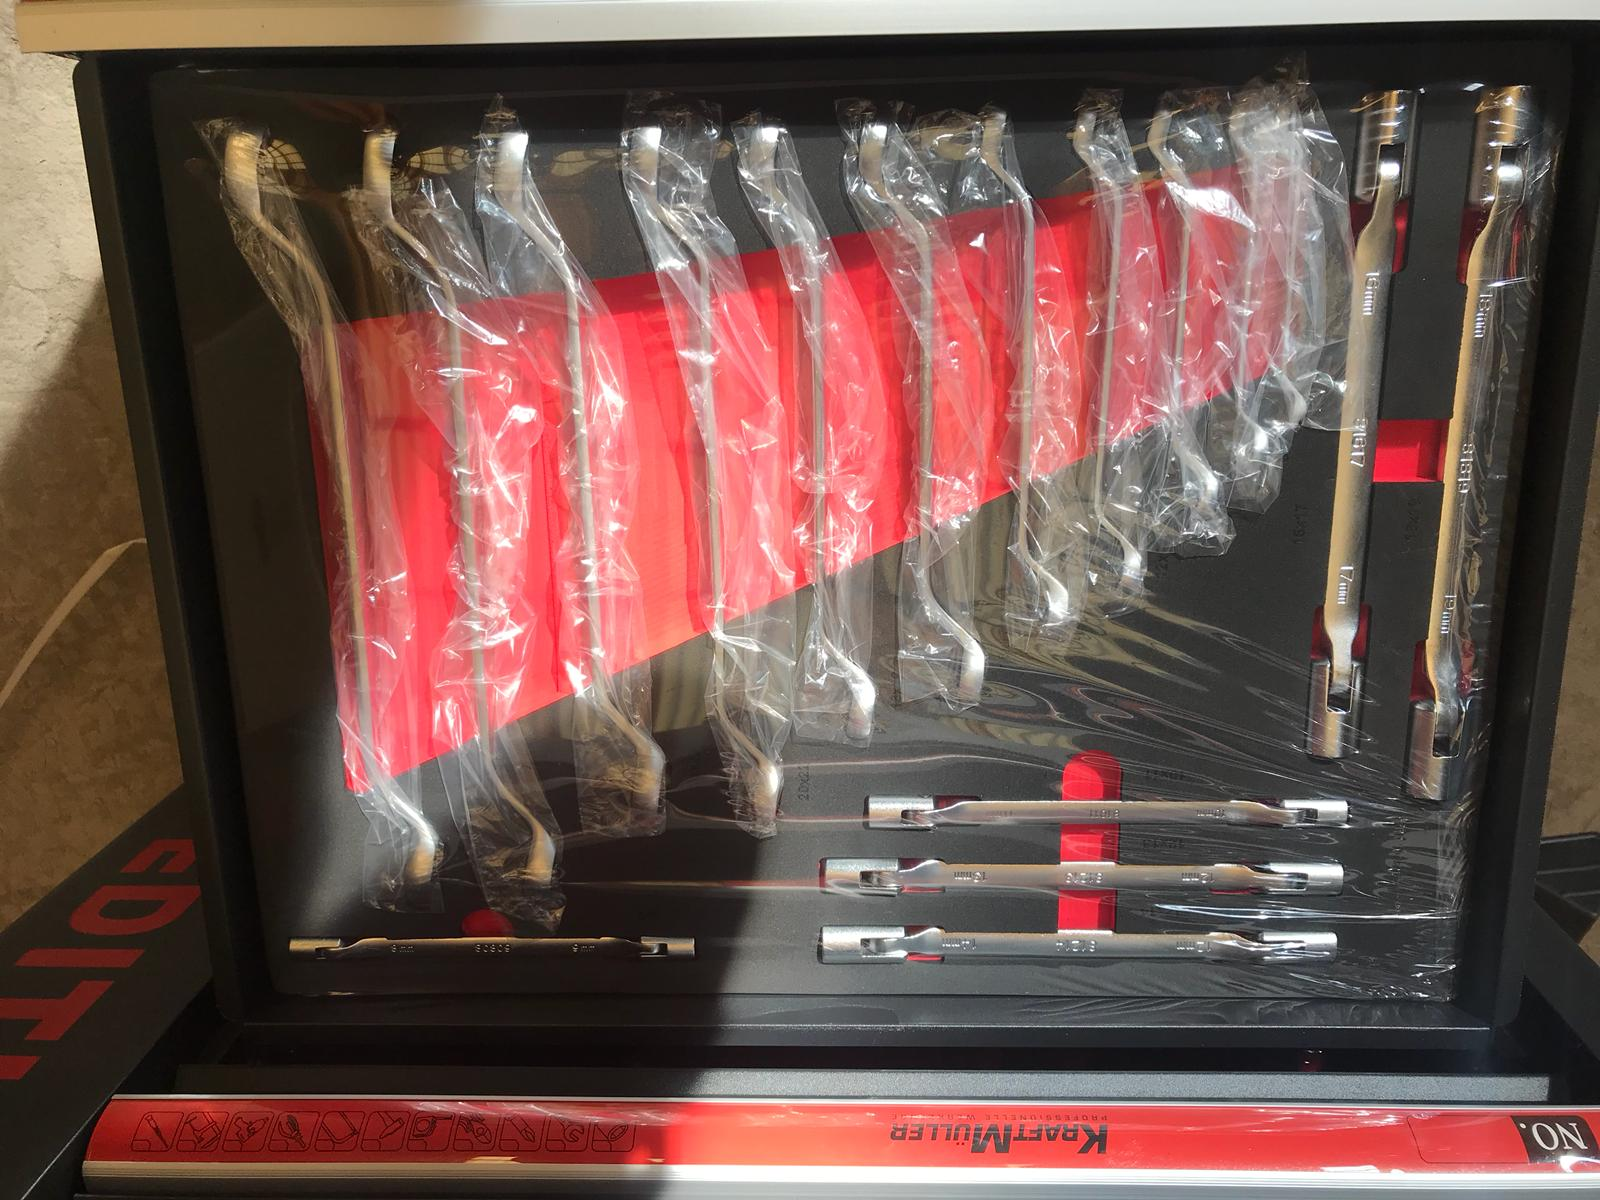 Lot 10049 - V Brand New Seven Drawer Locking Garage Tool Cabinet With Lockable Casters-Seven EVA Drawers of